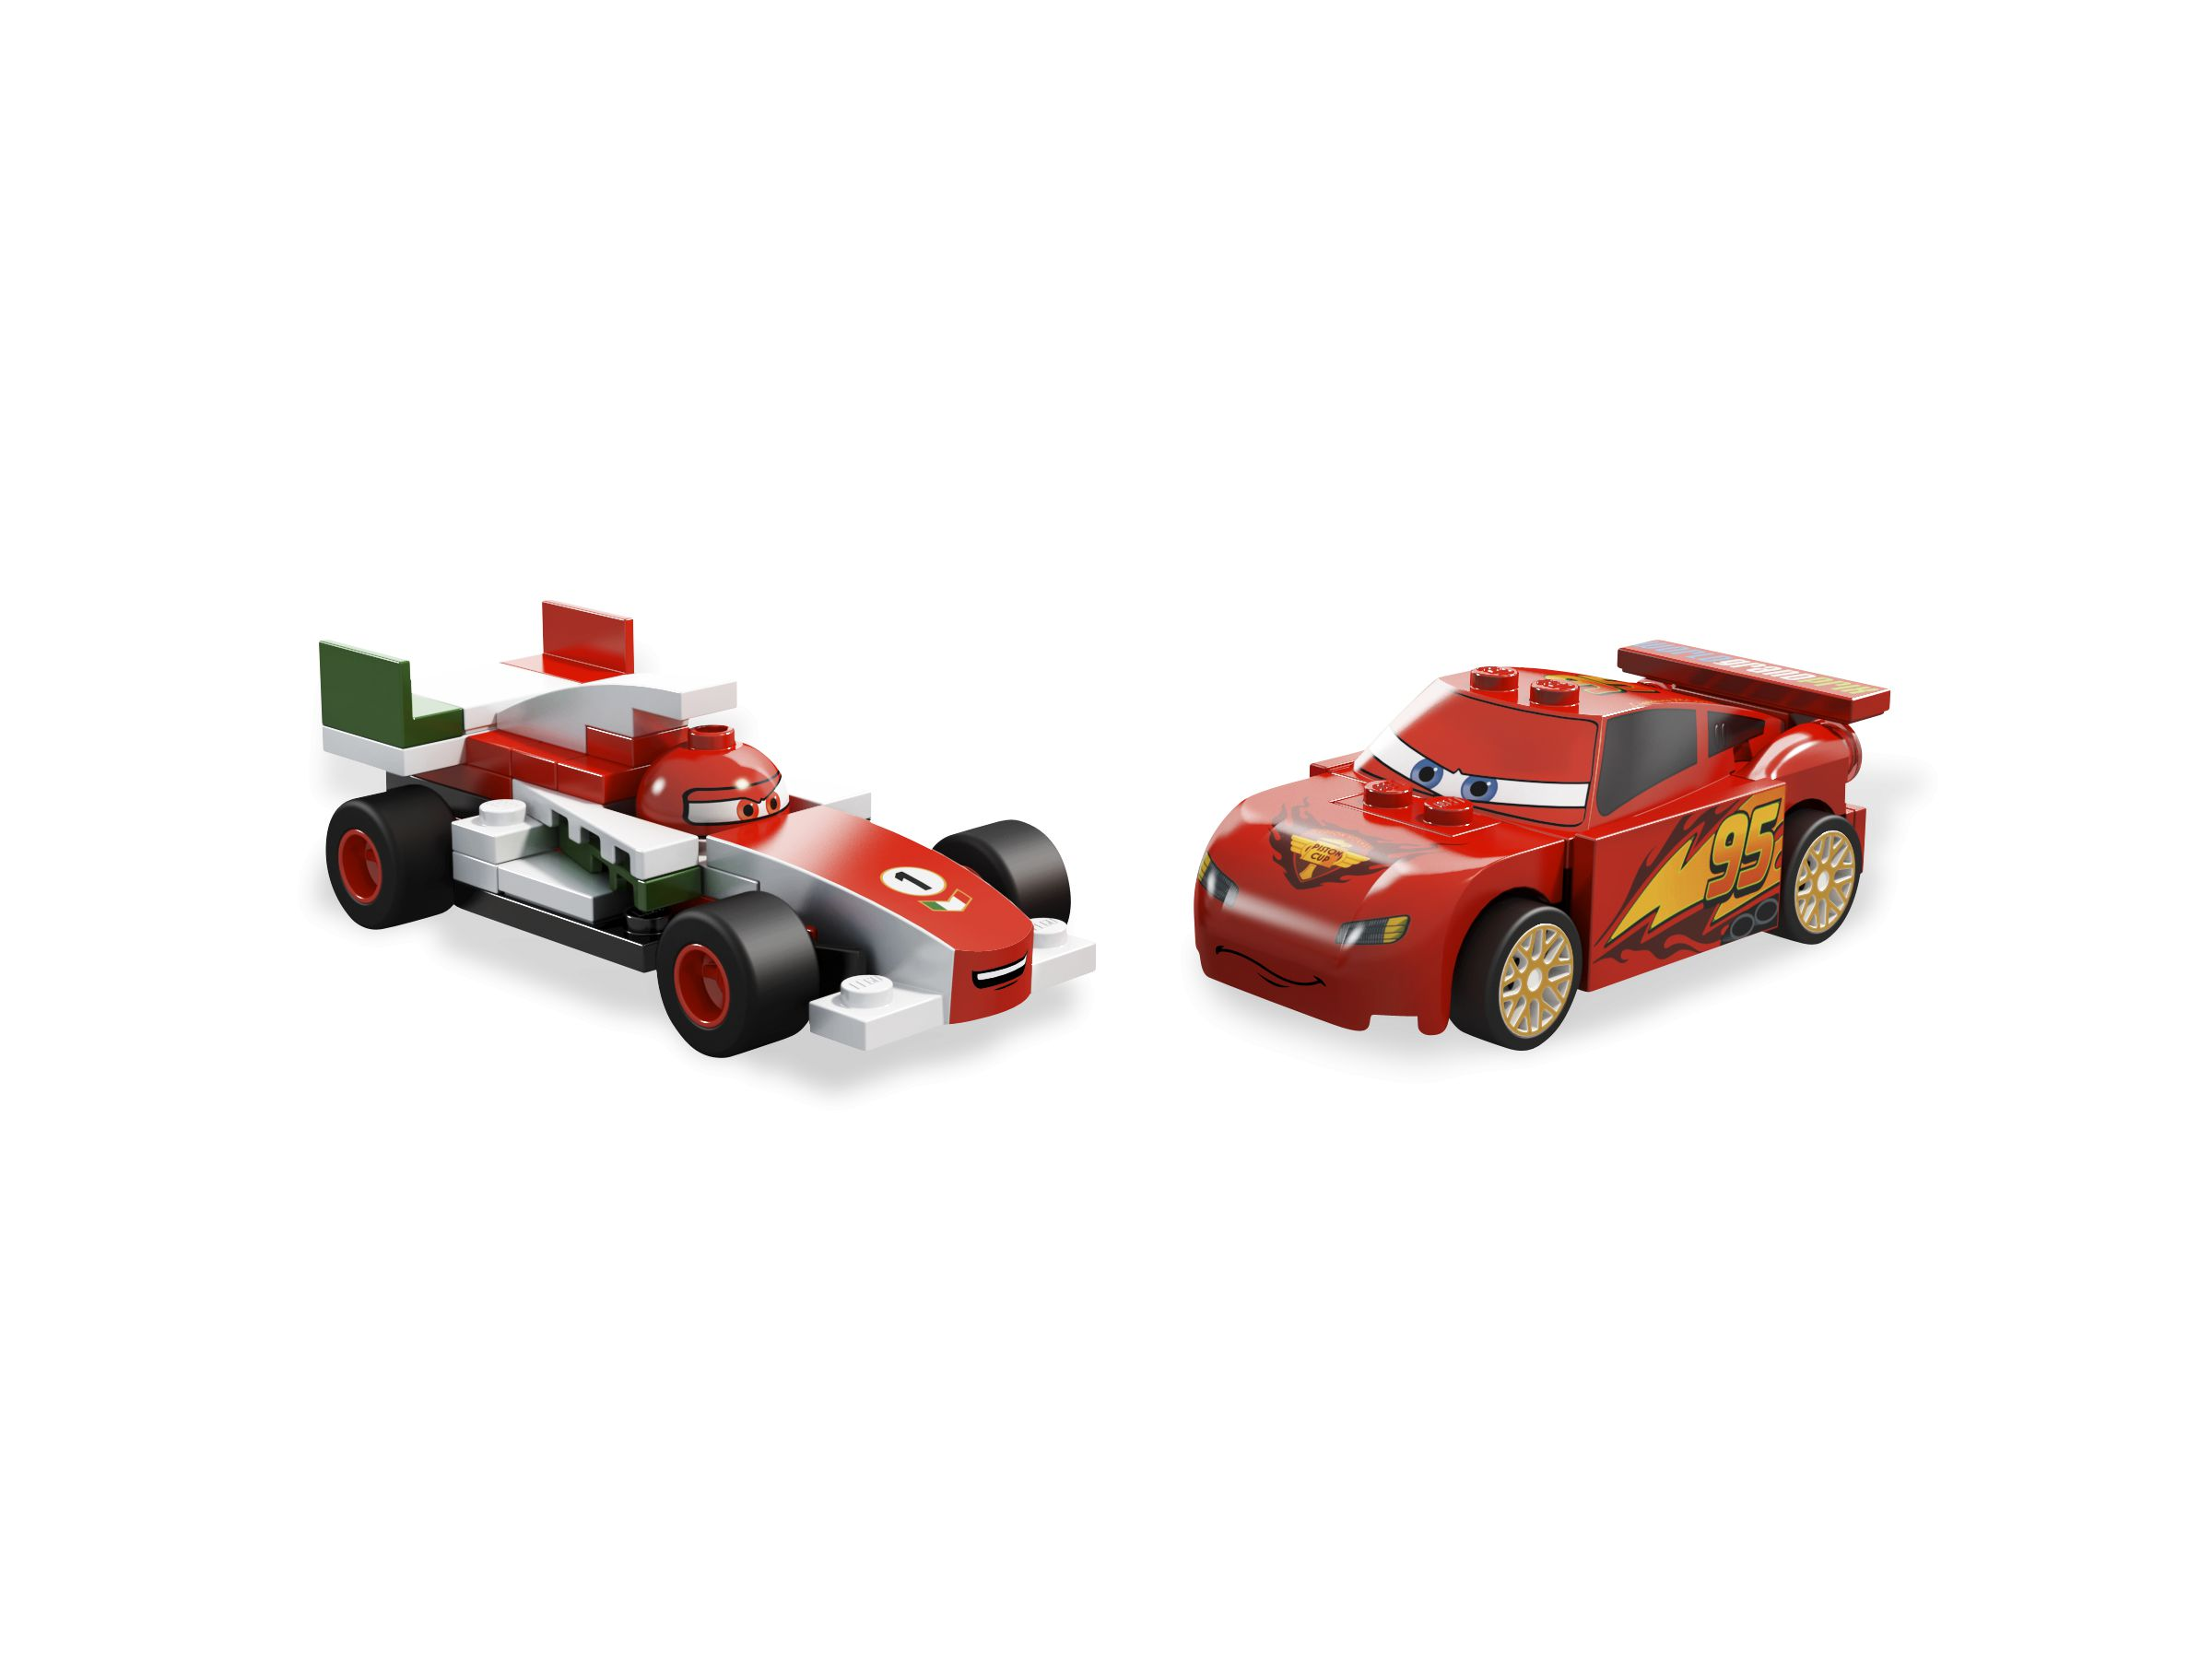 LEGO Cars 8423 World Grand Prix Racing Rivalry LEGO_8423_alt2.jpg